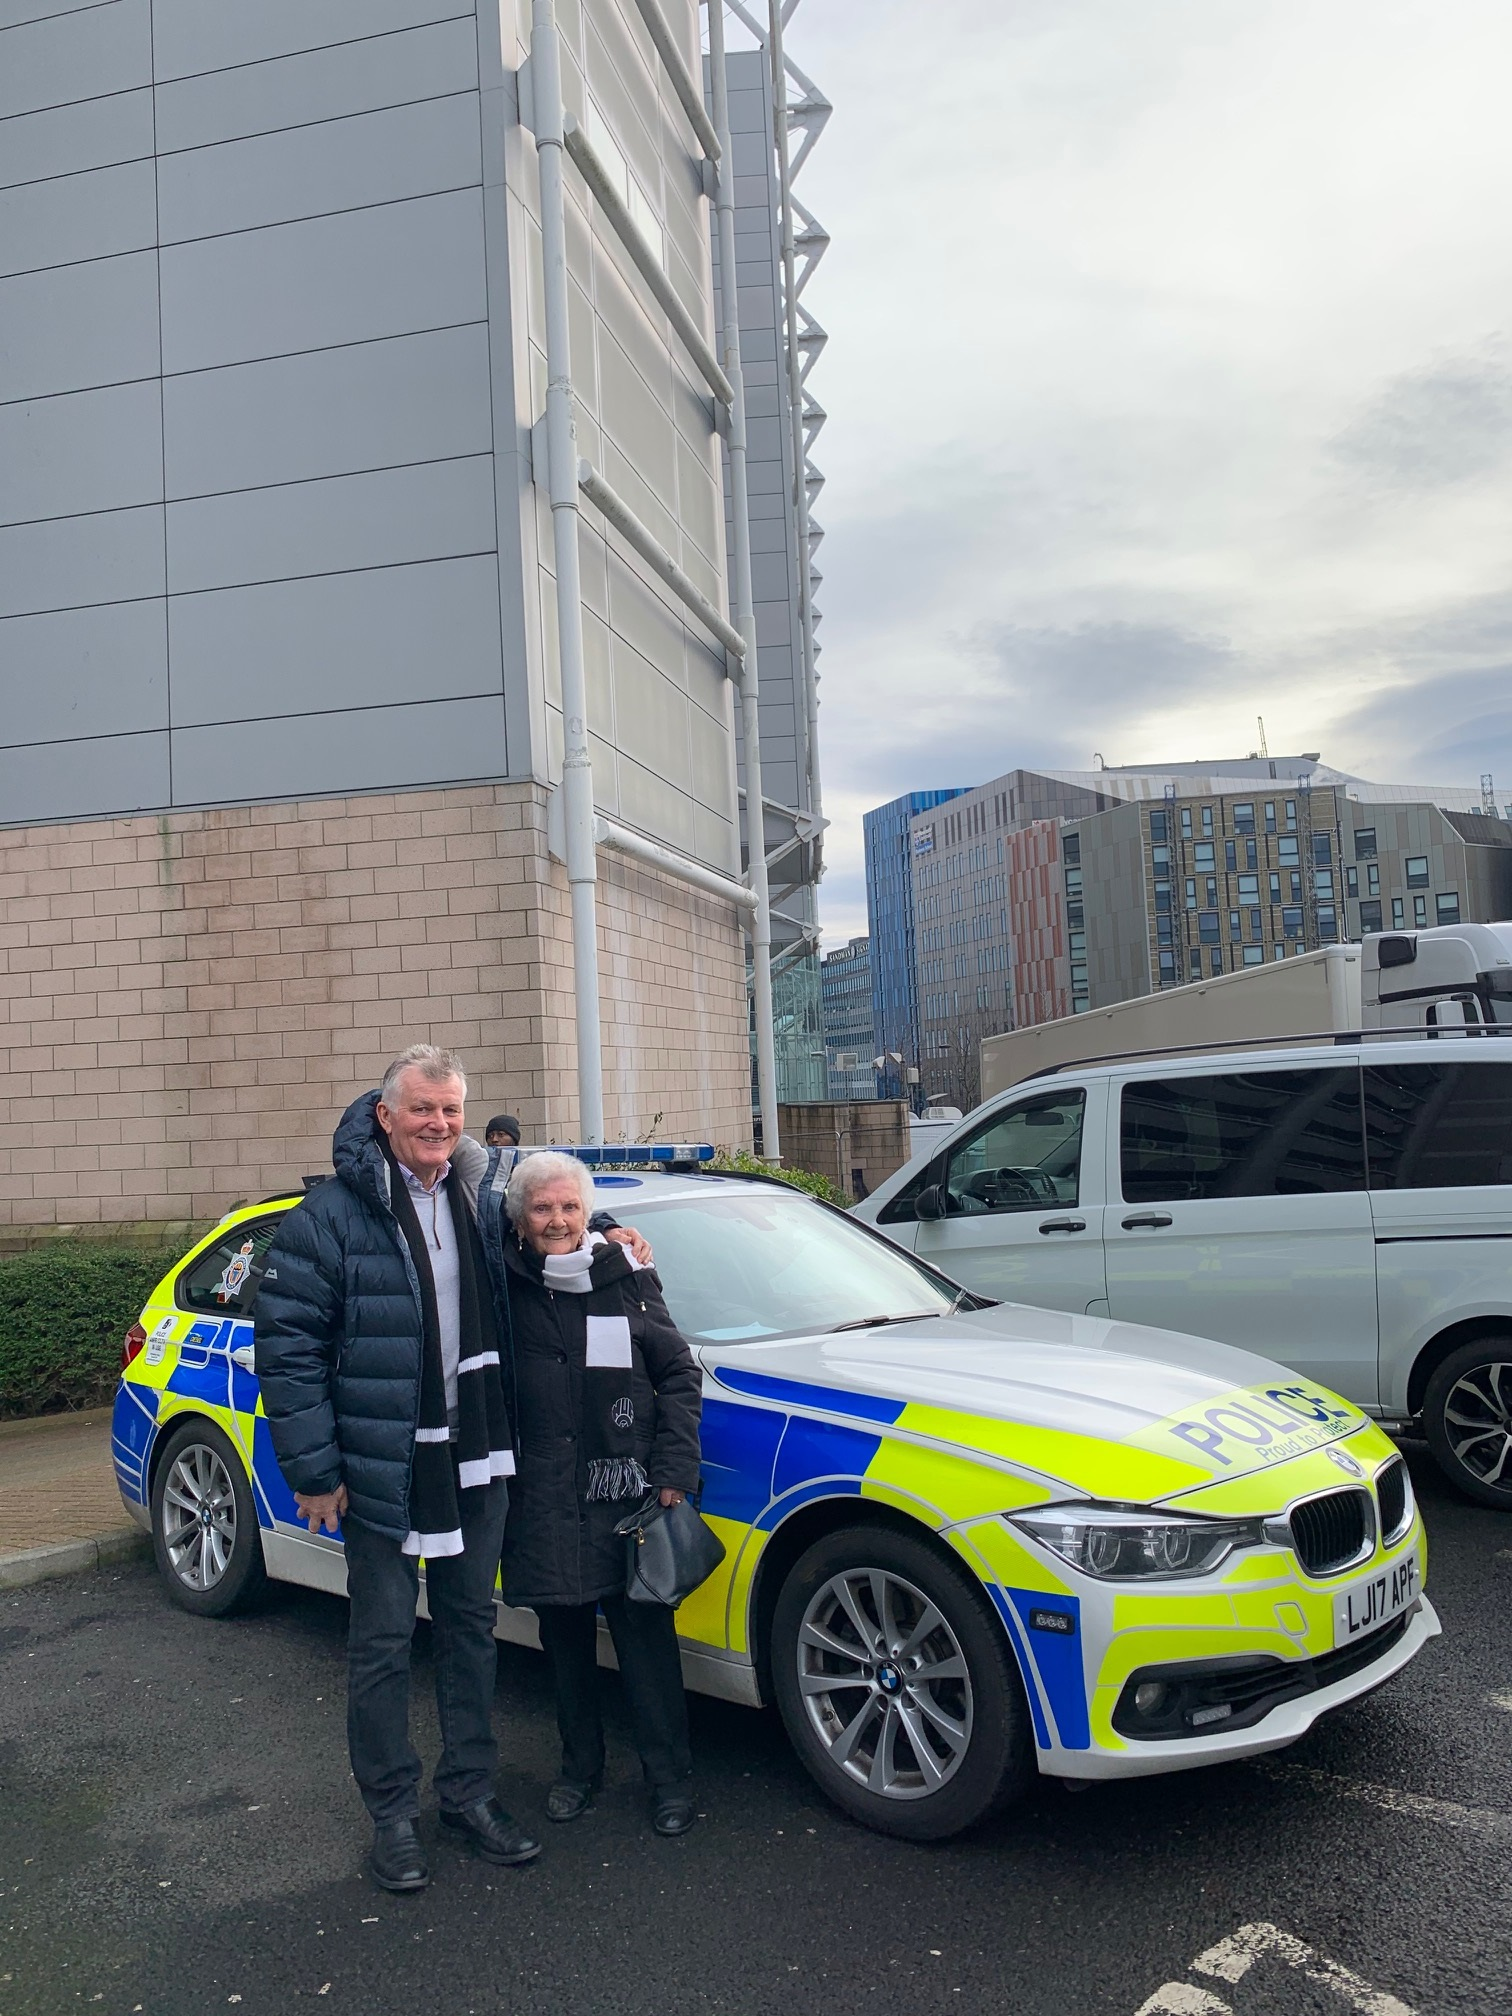 Florence Rudd, a lifelong Newcastle fan, stands next to a police car